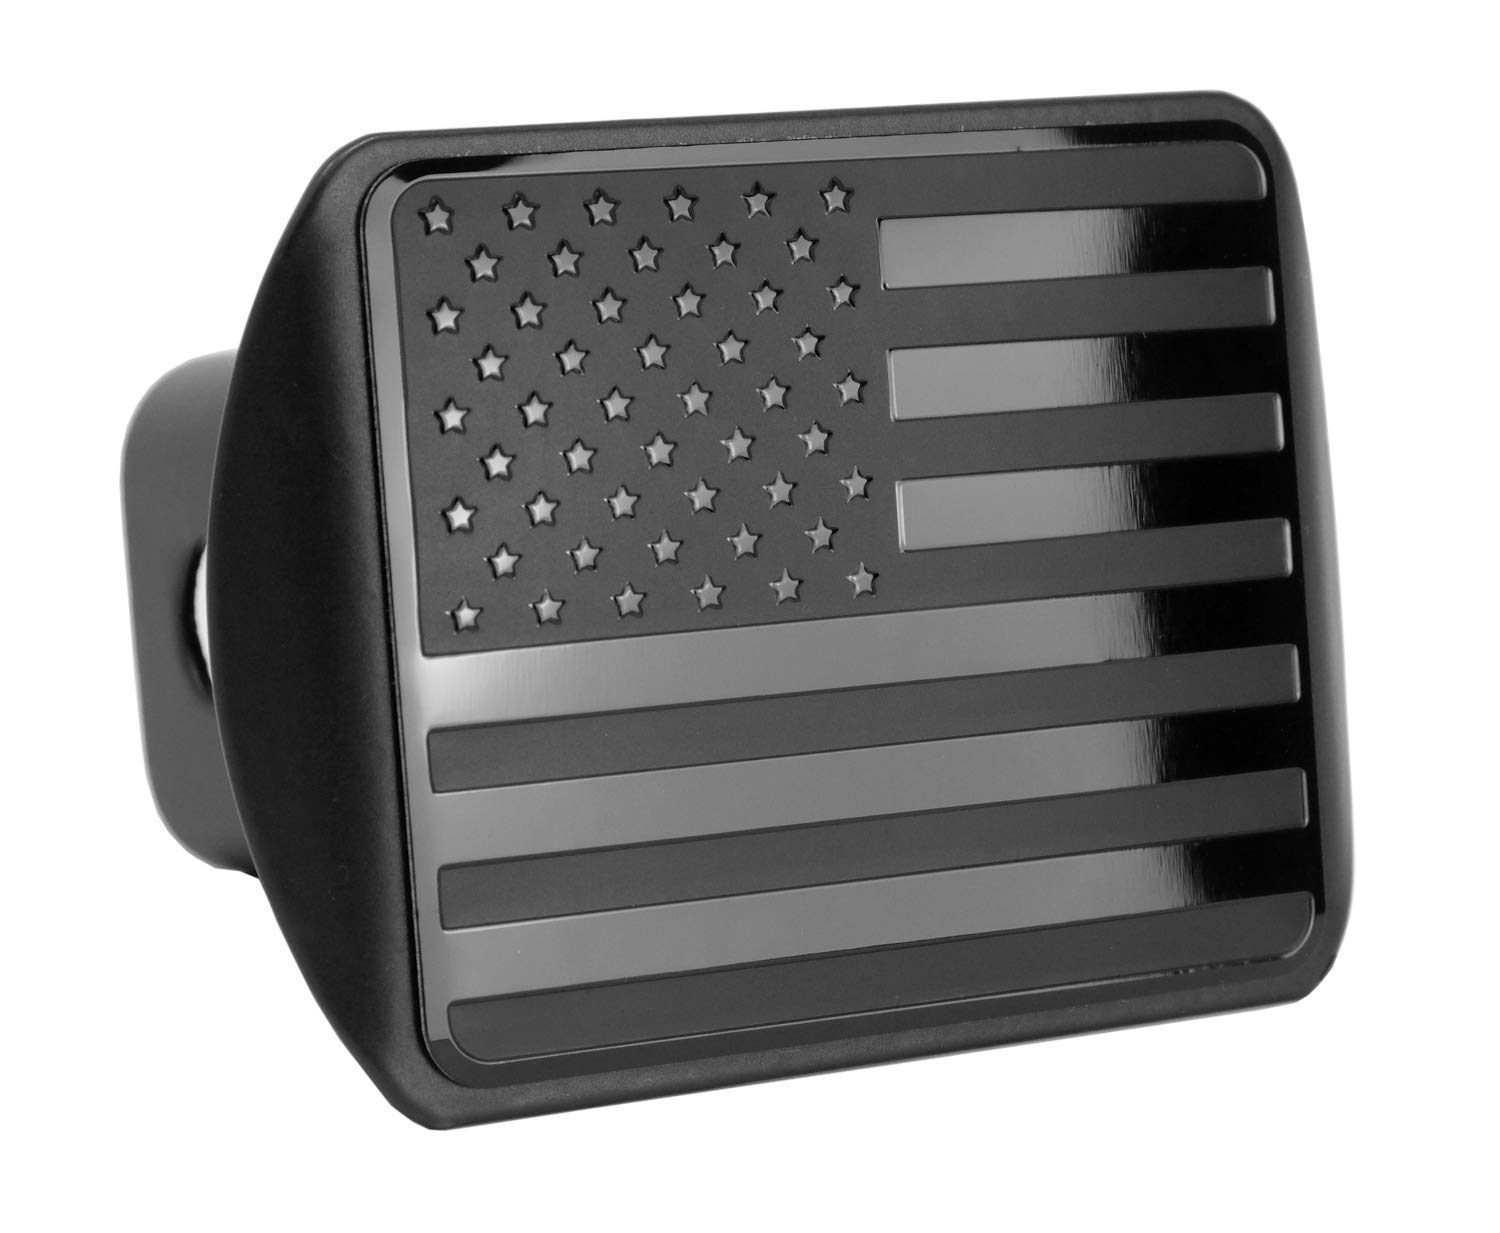 USA US American Stainless Steel Flag Metal Emblem on Metal Trailer Hitch Cover (Fits 2'' Receivers, Black) by eVerHITCH